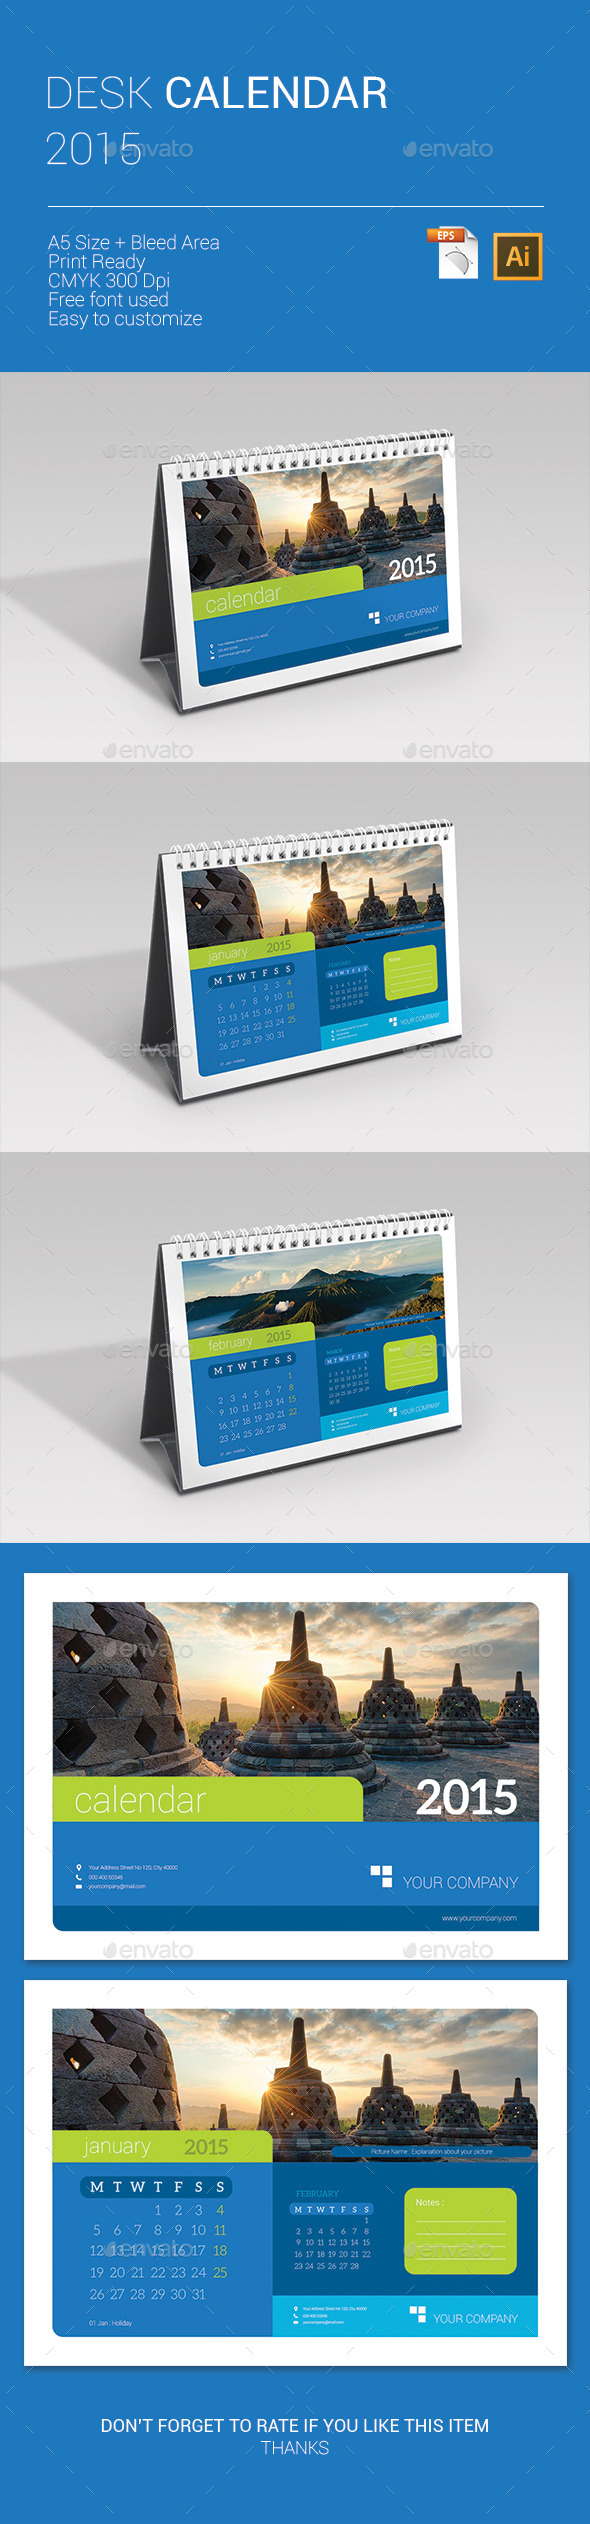 GraphicRiver Desk Calendar 2015 9670840